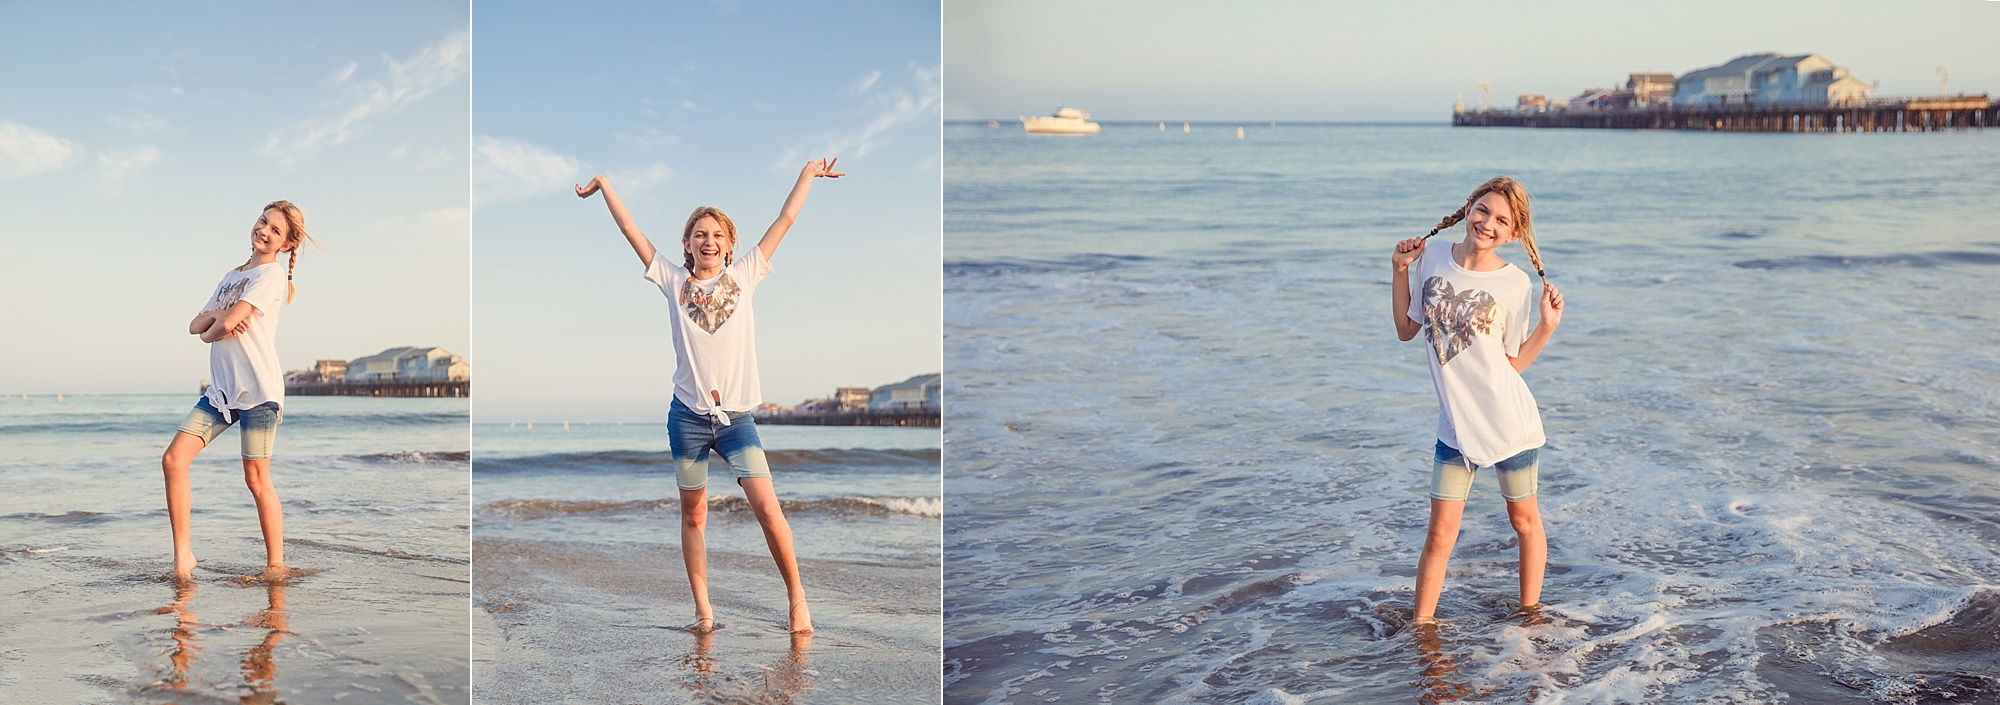 Beach Photography | Amy Gray Photography